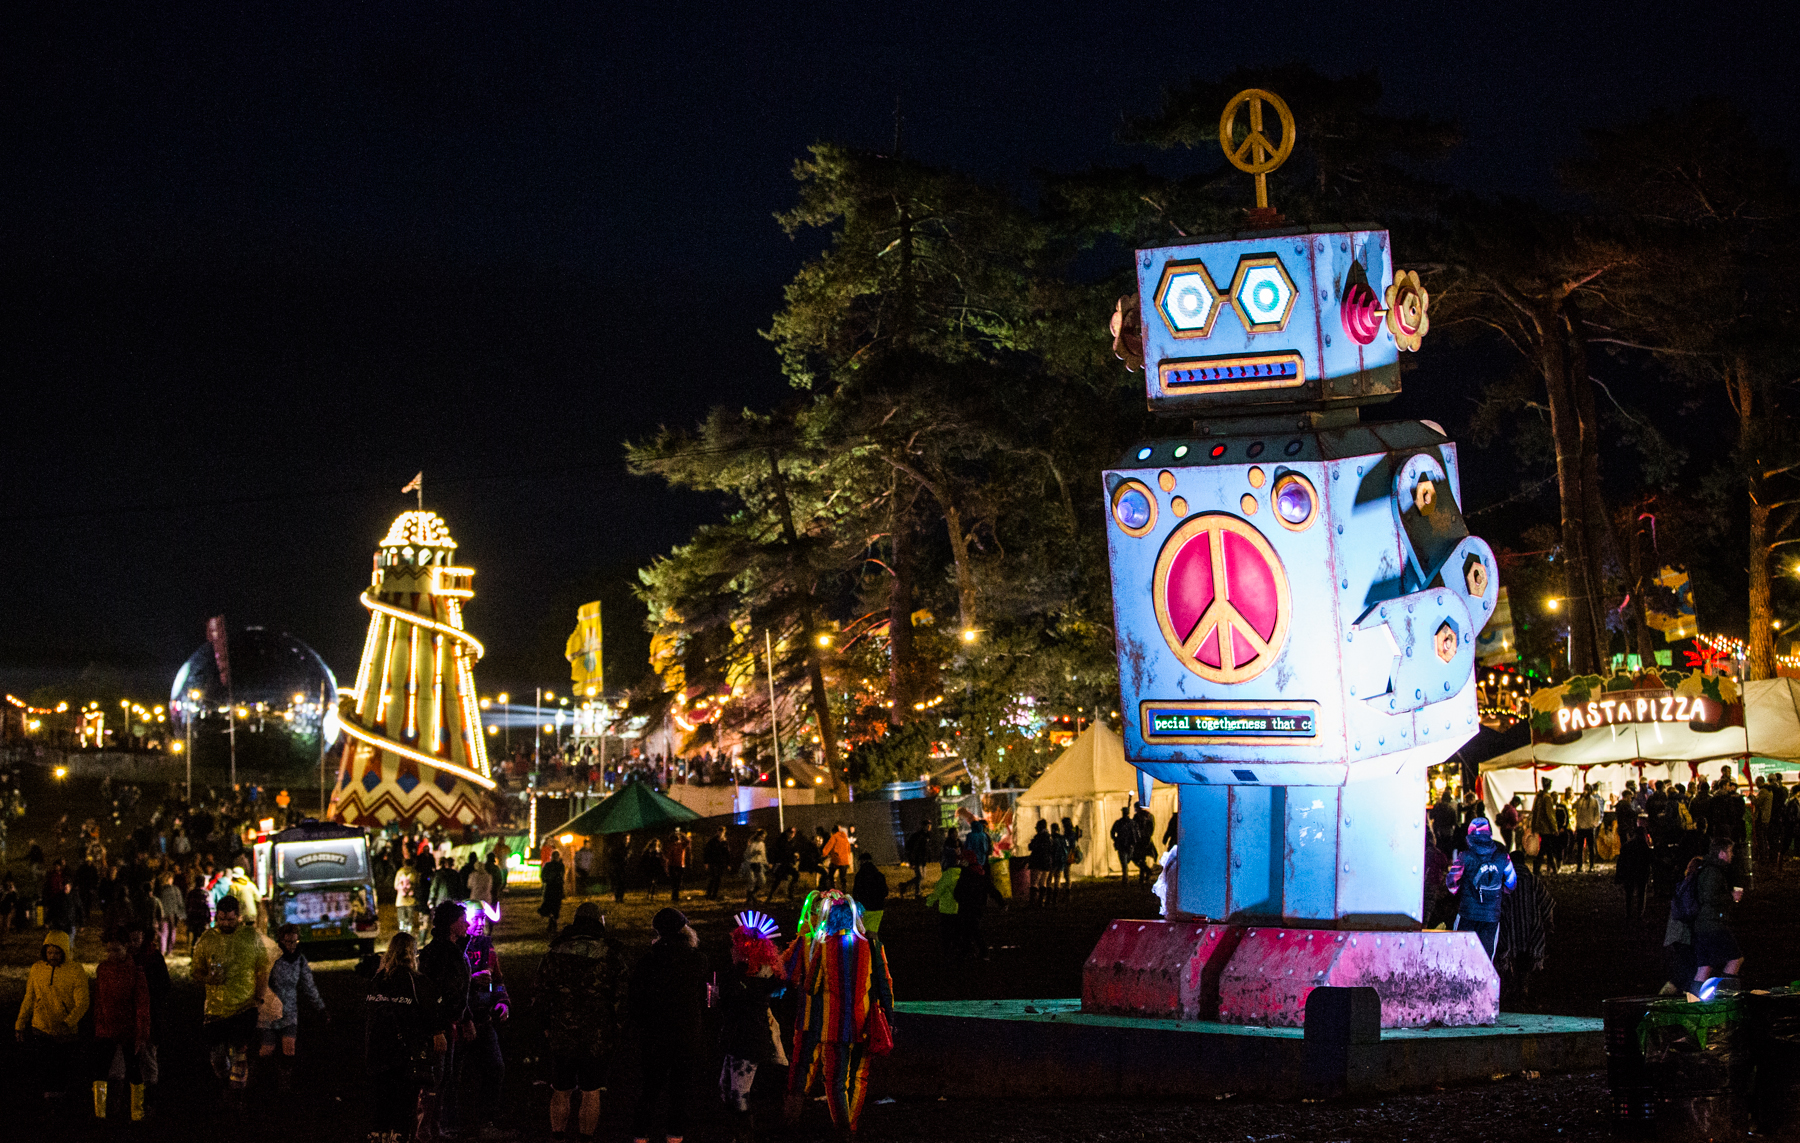 Bestival's famous Lovebot was back once more to bring the good vibes